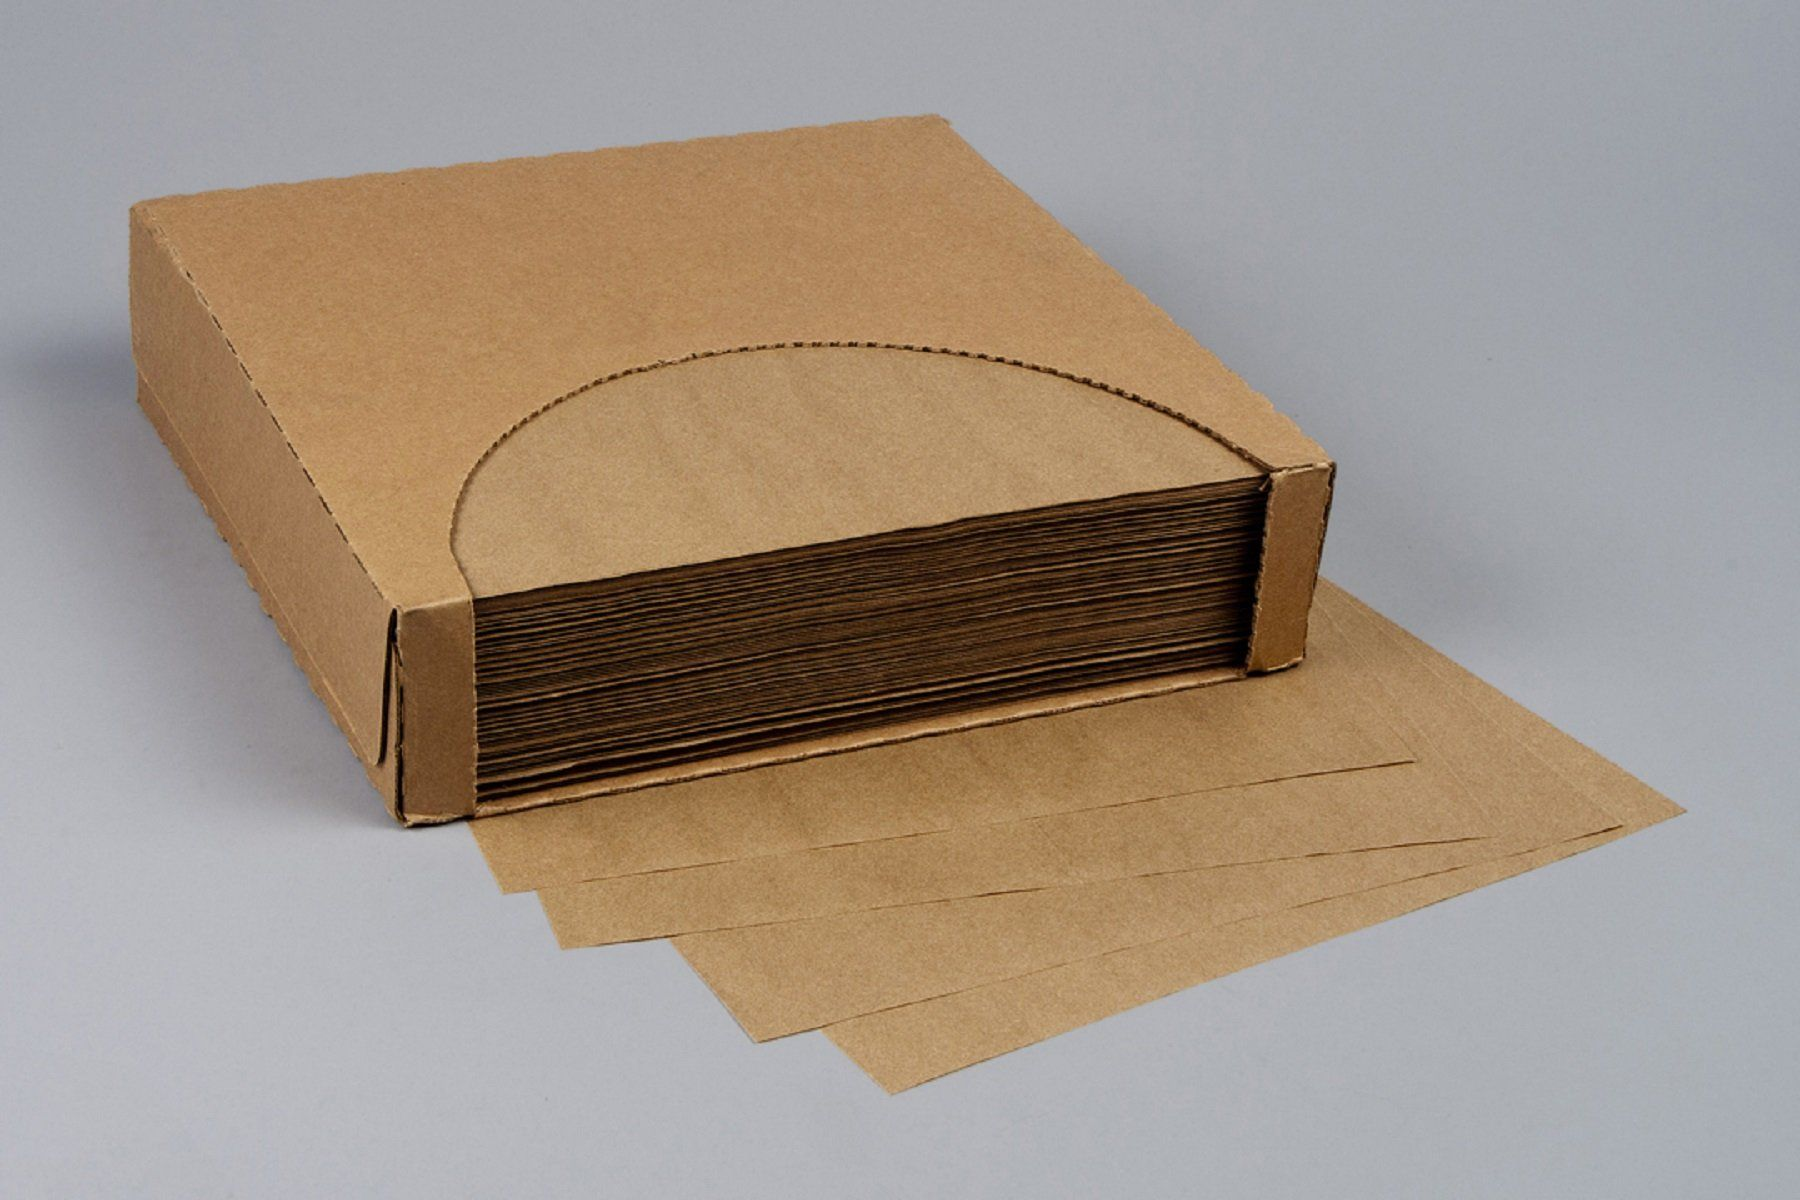 12x12 Waxed Paper Wrap Or Basket Liner Sheet Natural Kraft 1000 Sheets Per Box 7b4nk Check This Awesome Product By Goin Wax Paper Basket Liners Paper Basket